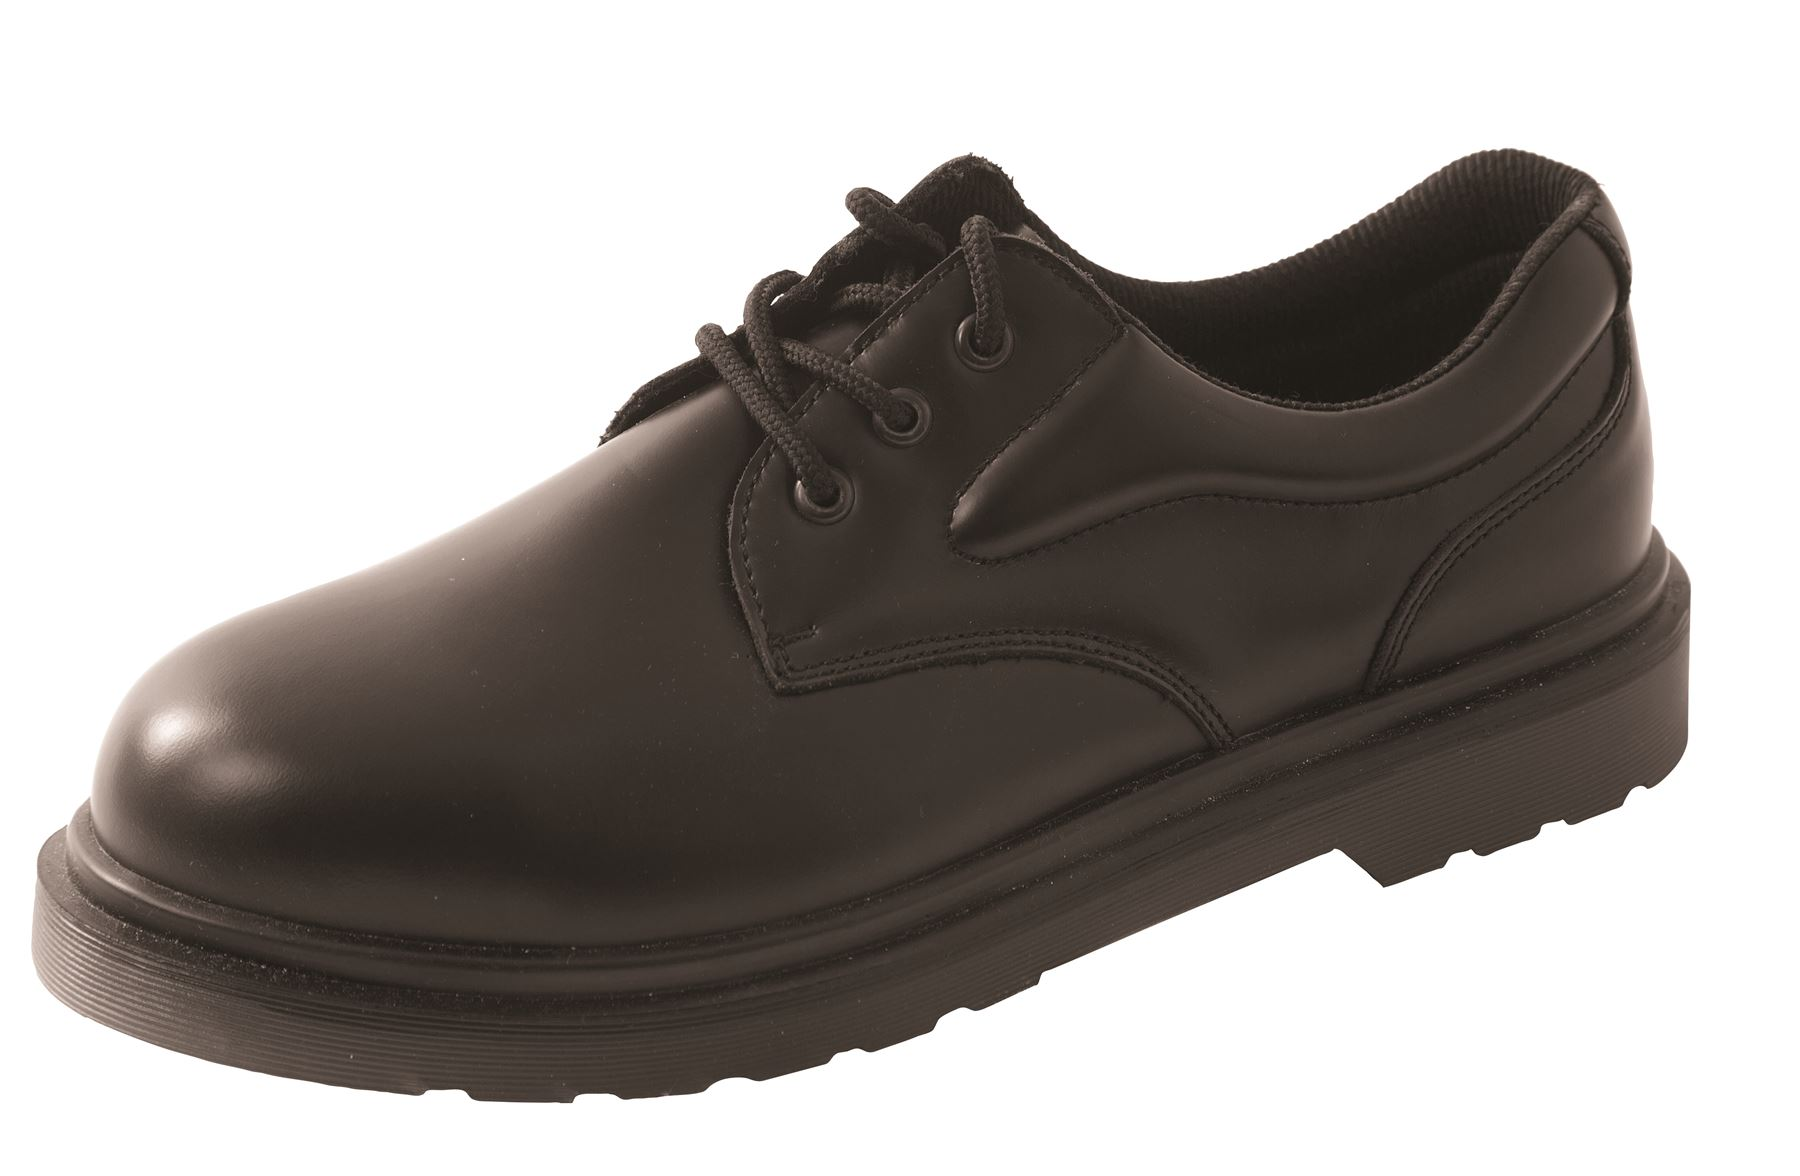 portwest leather air cushion safety shoe trainers boots